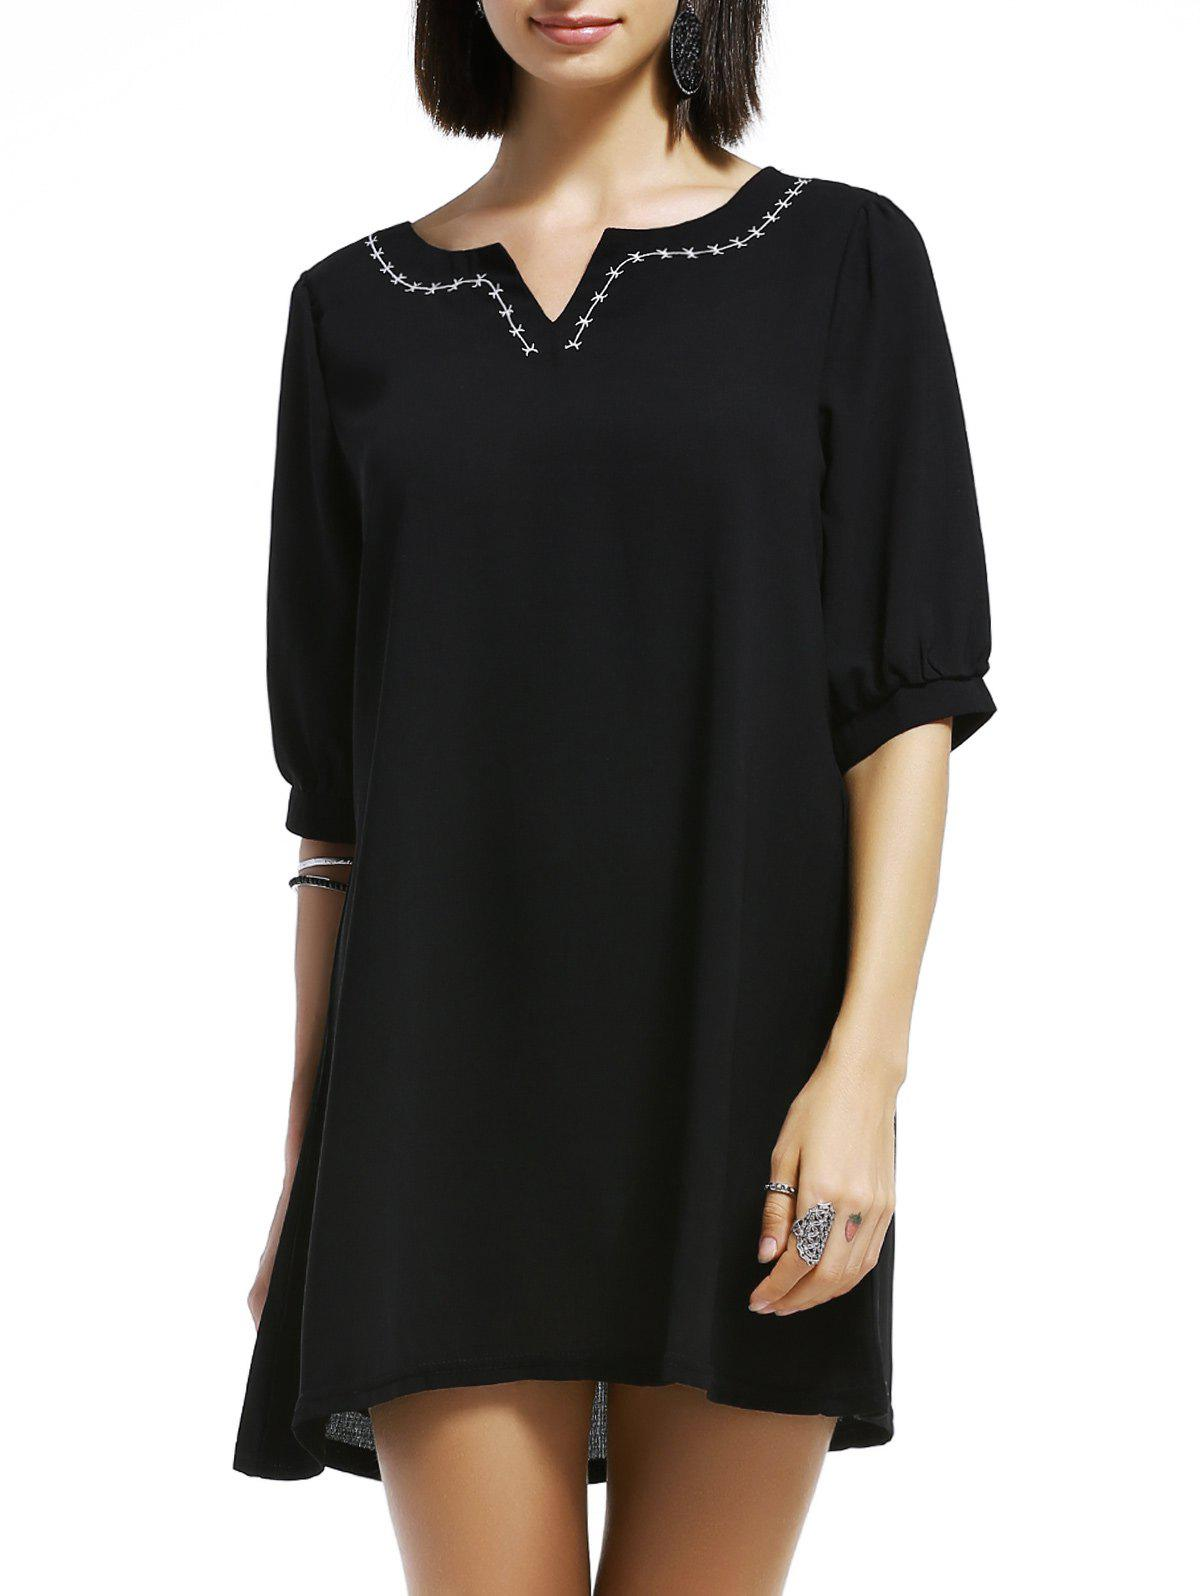 Simple Half Sleeve Embroided Loose Women's T Shirt Dress